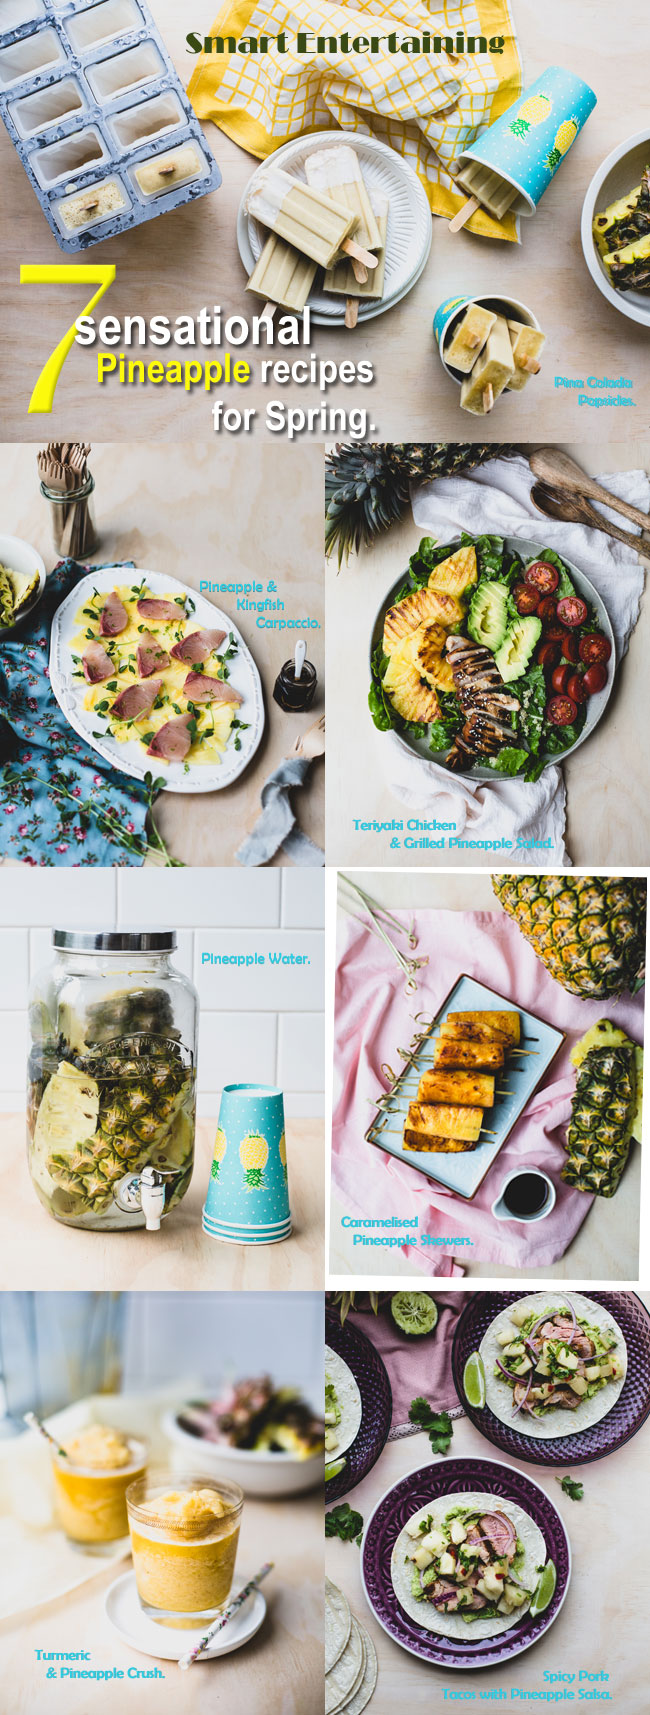 7 Sensational Pineapple Recipes for Spring